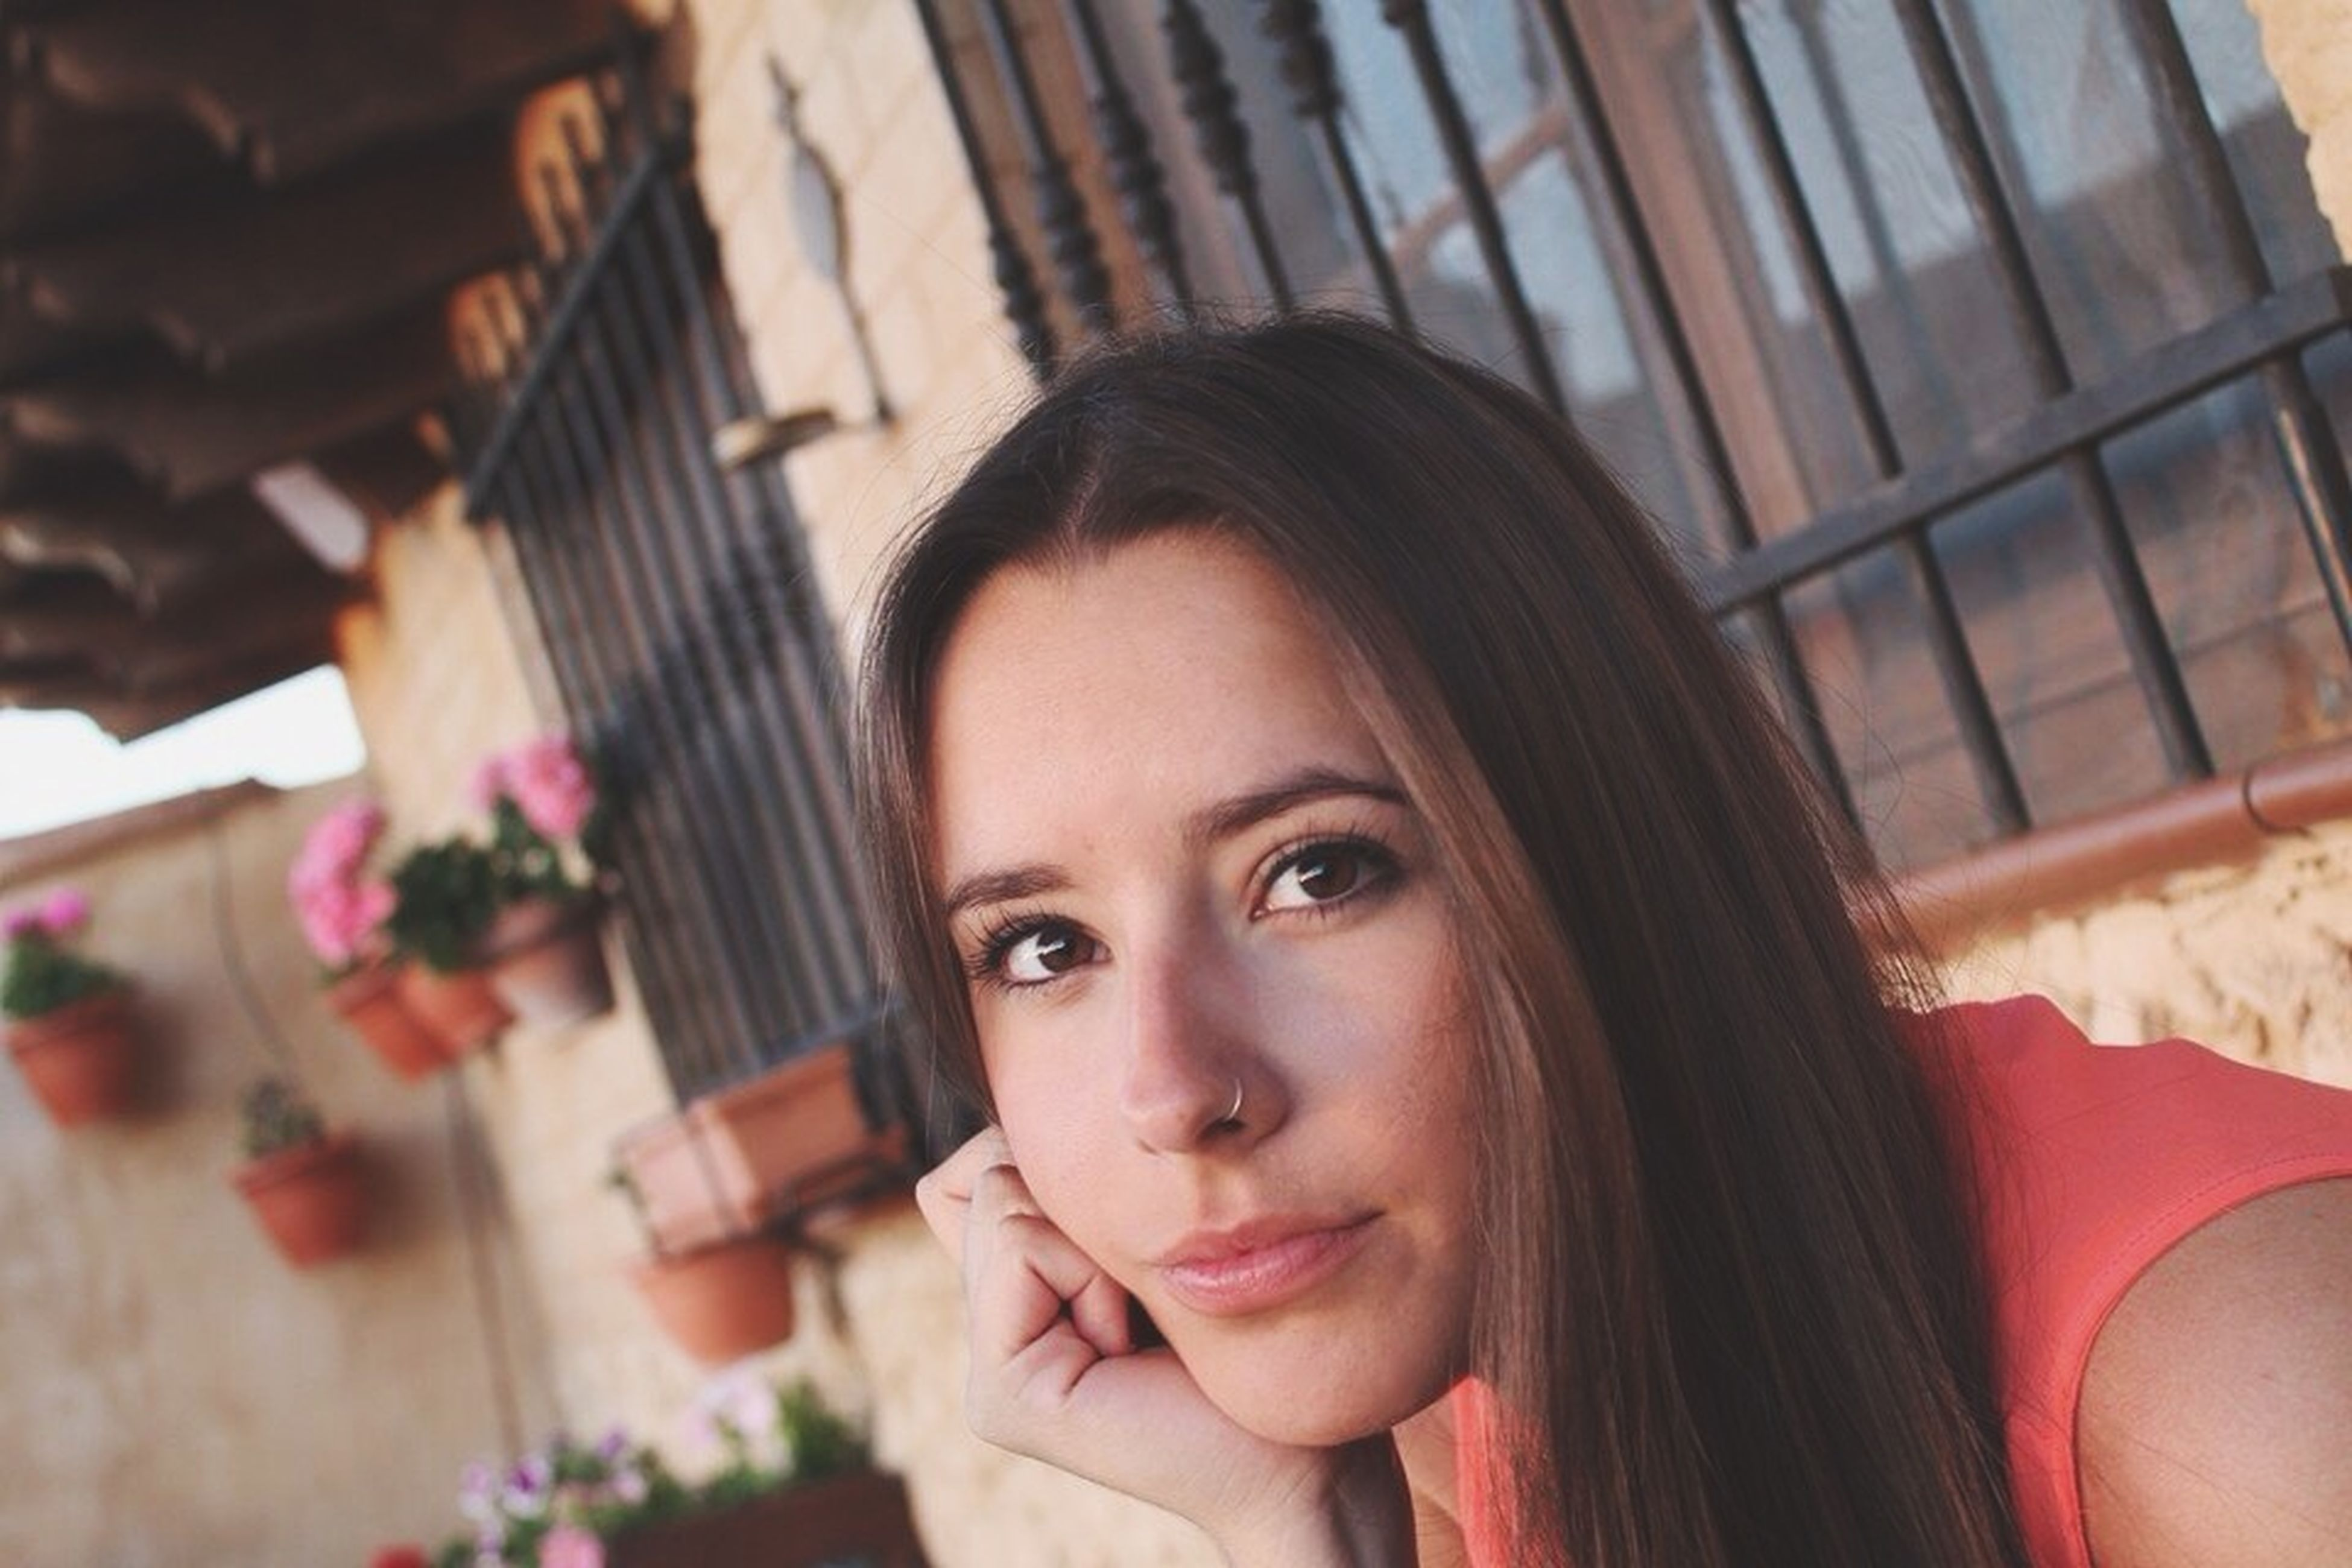 lifestyles, person, headshot, young women, young adult, indoors, portrait, looking at camera, leisure activity, focus on foreground, front view, long hair, head and shoulders, smiling, built structure, close-up, architecture